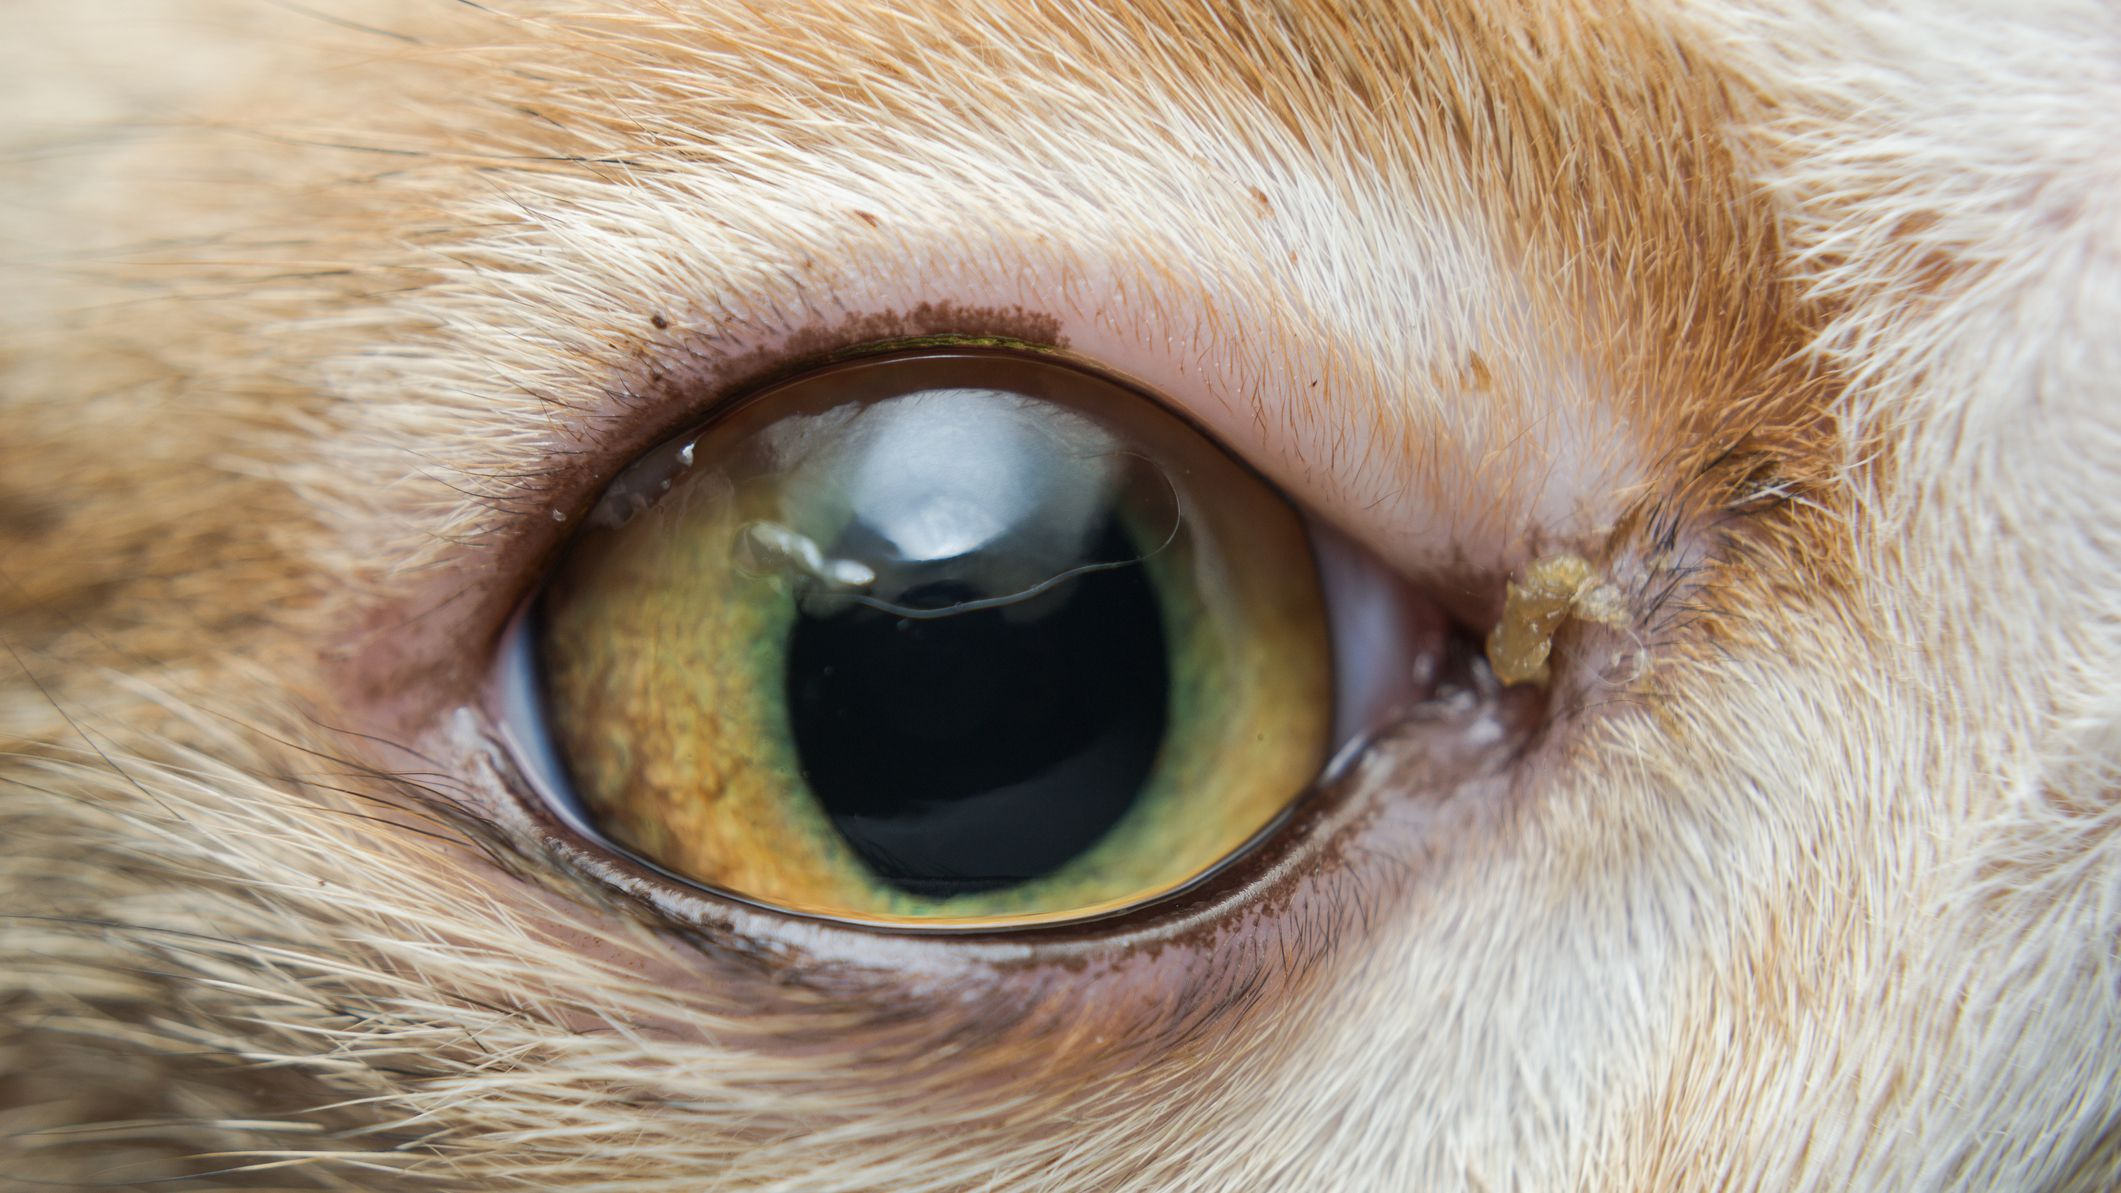 How To Treat Conjunctivitis In Cats